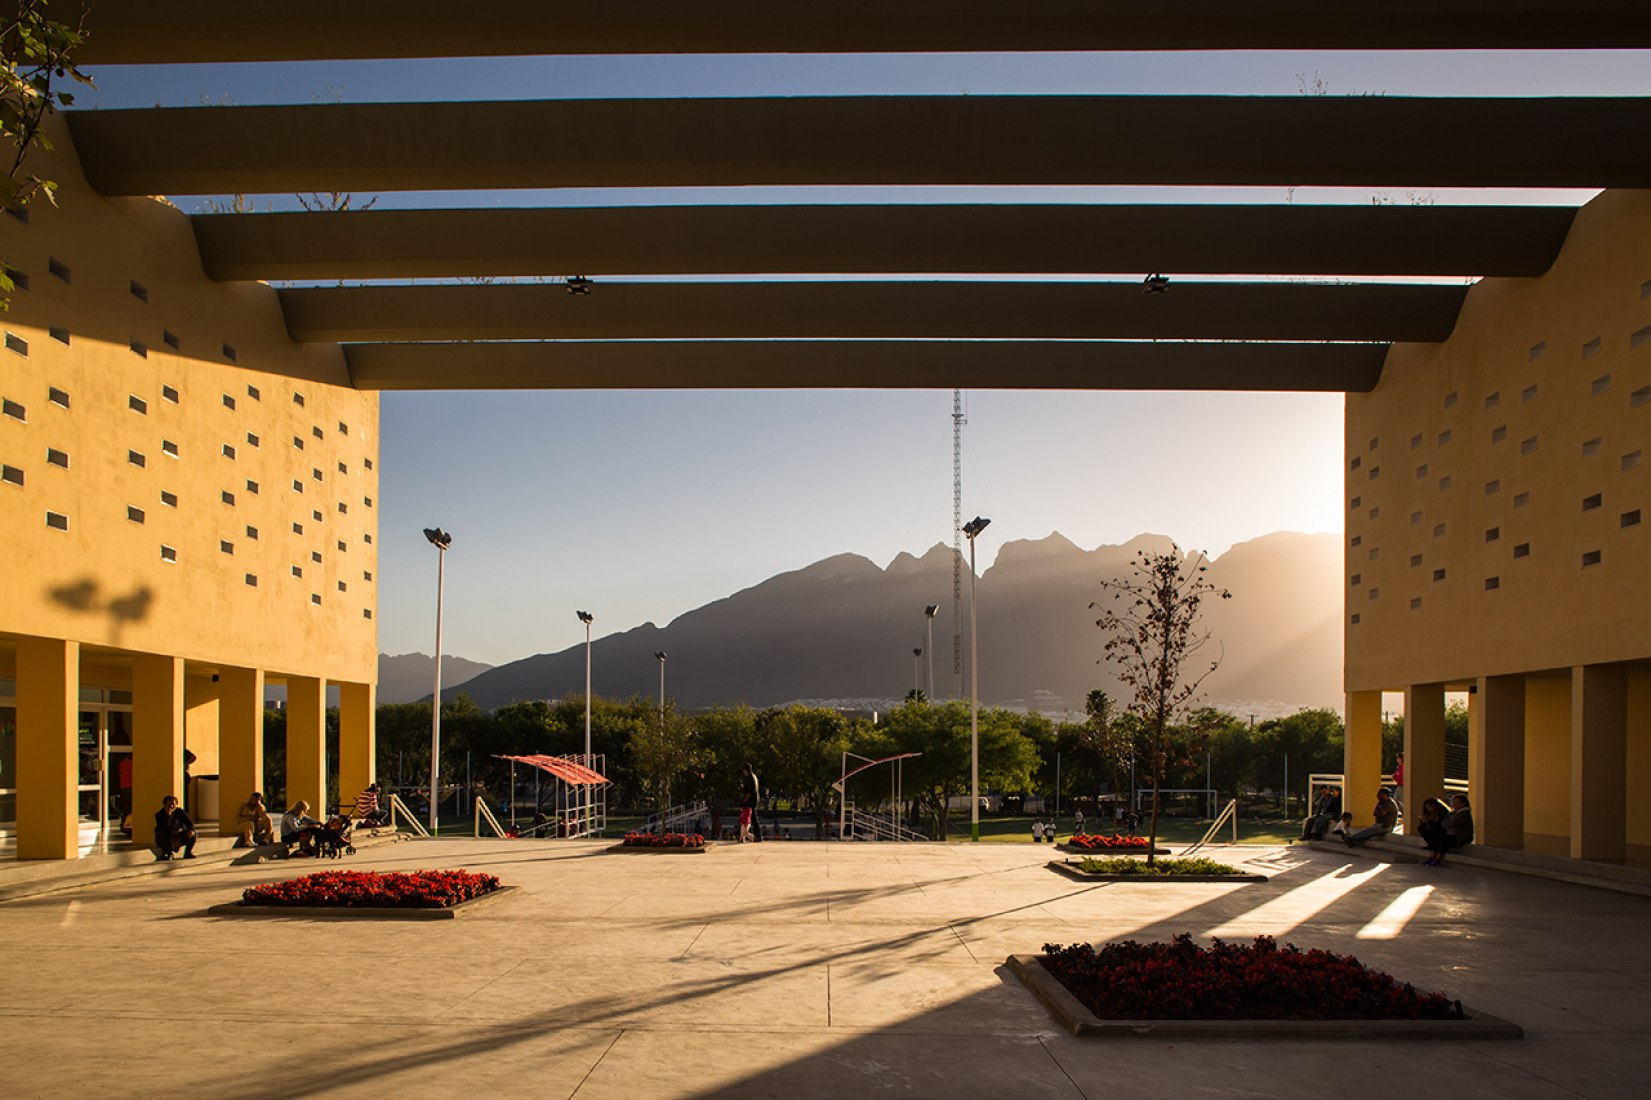 Community Centre San Bernabé in Monterrey by Pich-Aguilera Architects. Photography © Jorge Taboada.